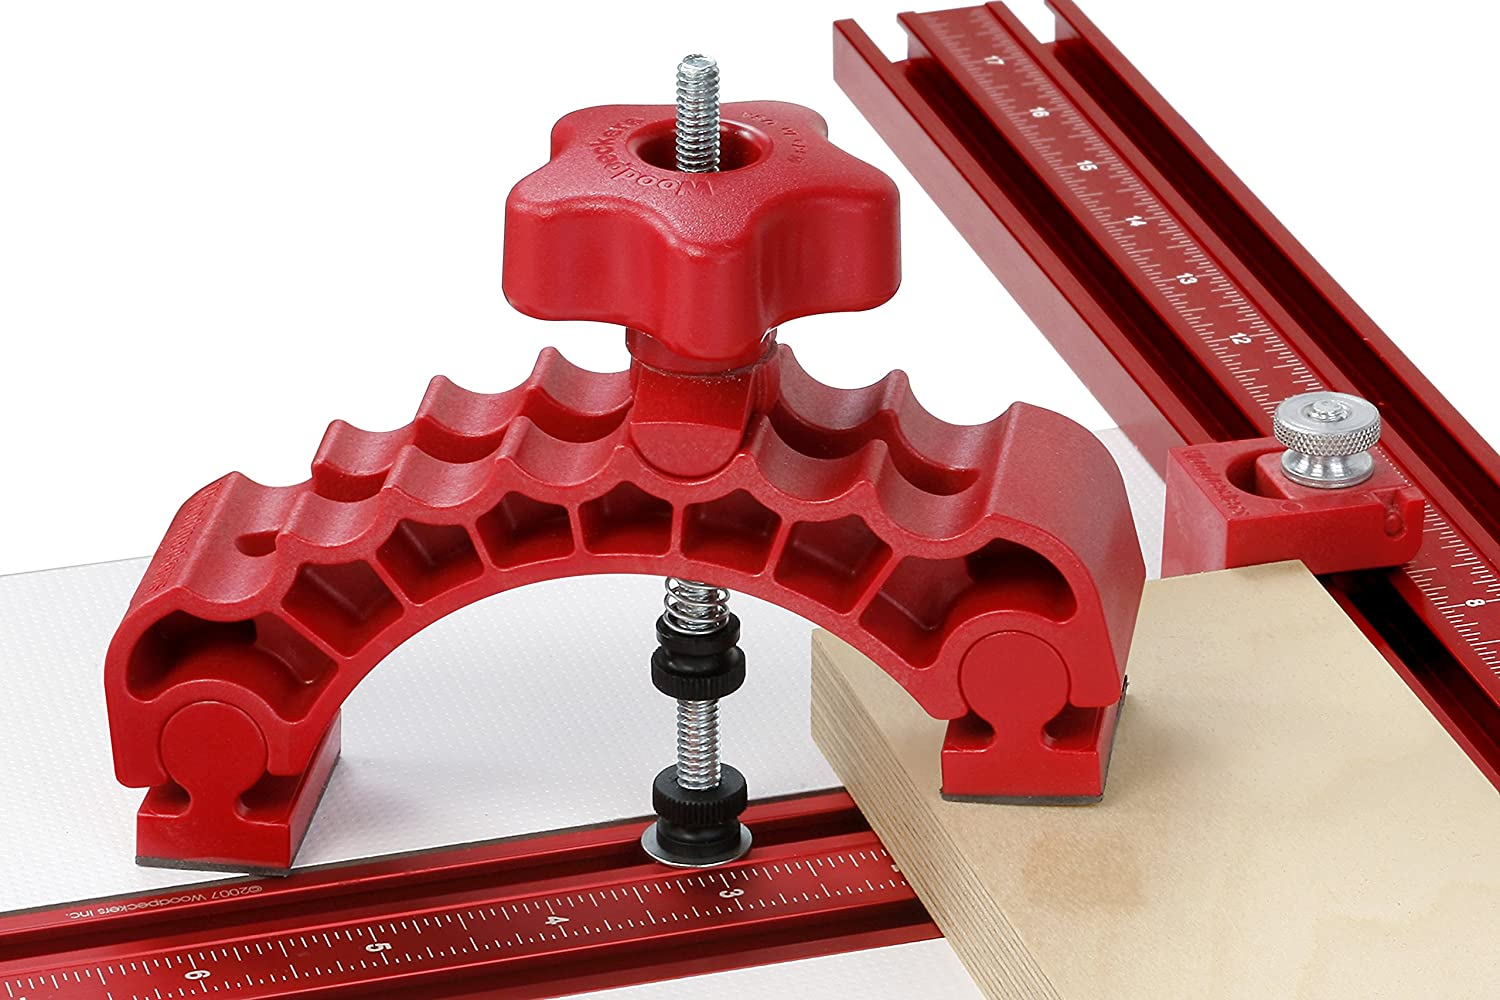 Woodpeckers WPDPPACK2 Drill Press Table with 2 Knuckle Clamps